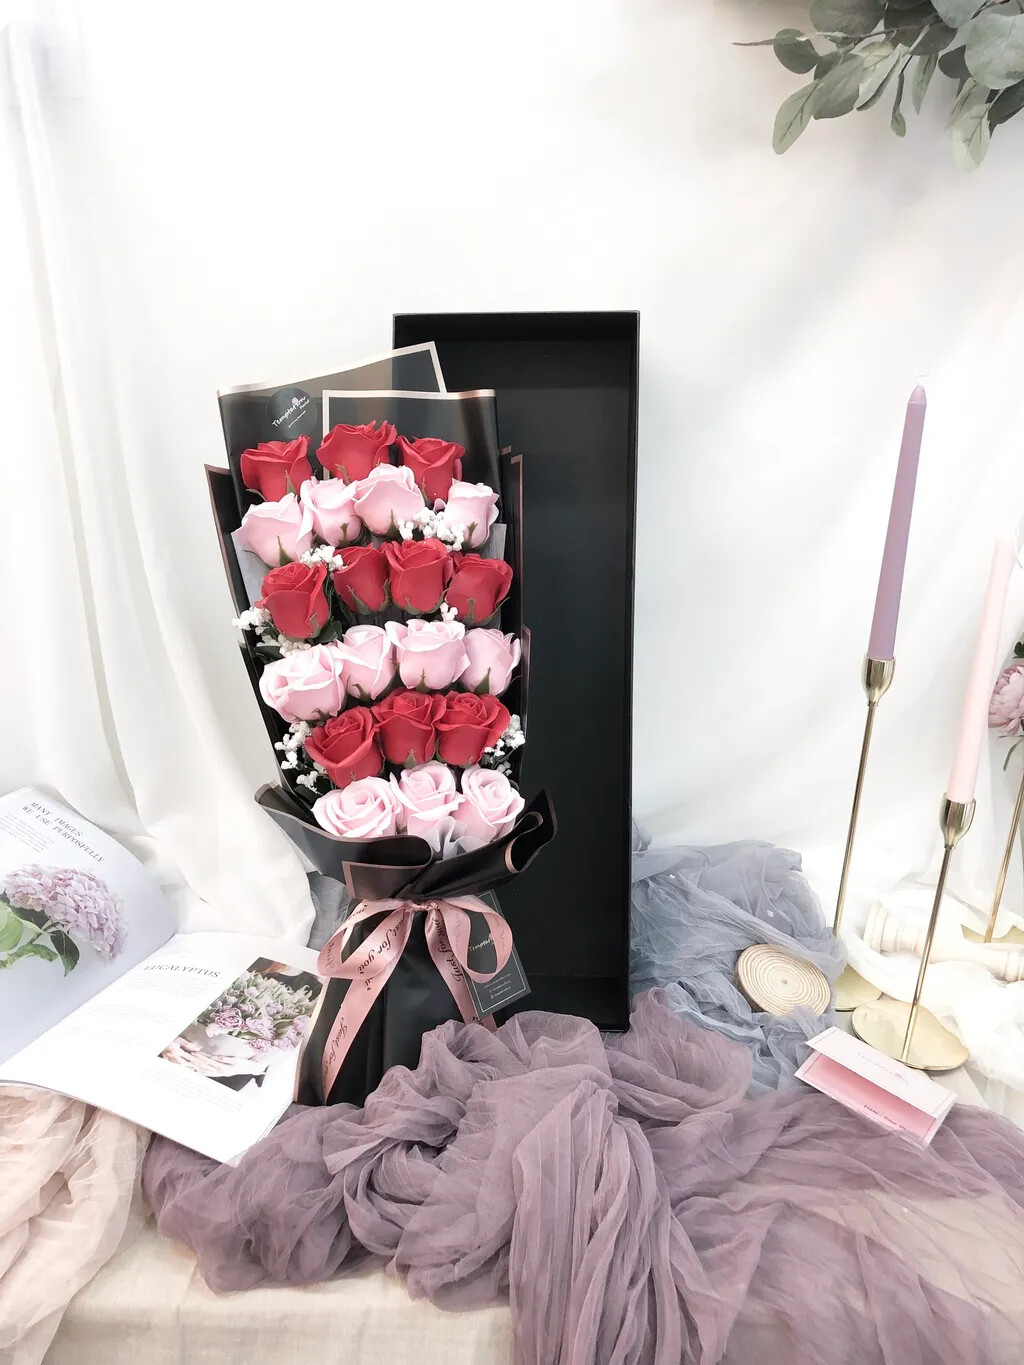 Love's Spark (By: Temptation Florist from Seremban)